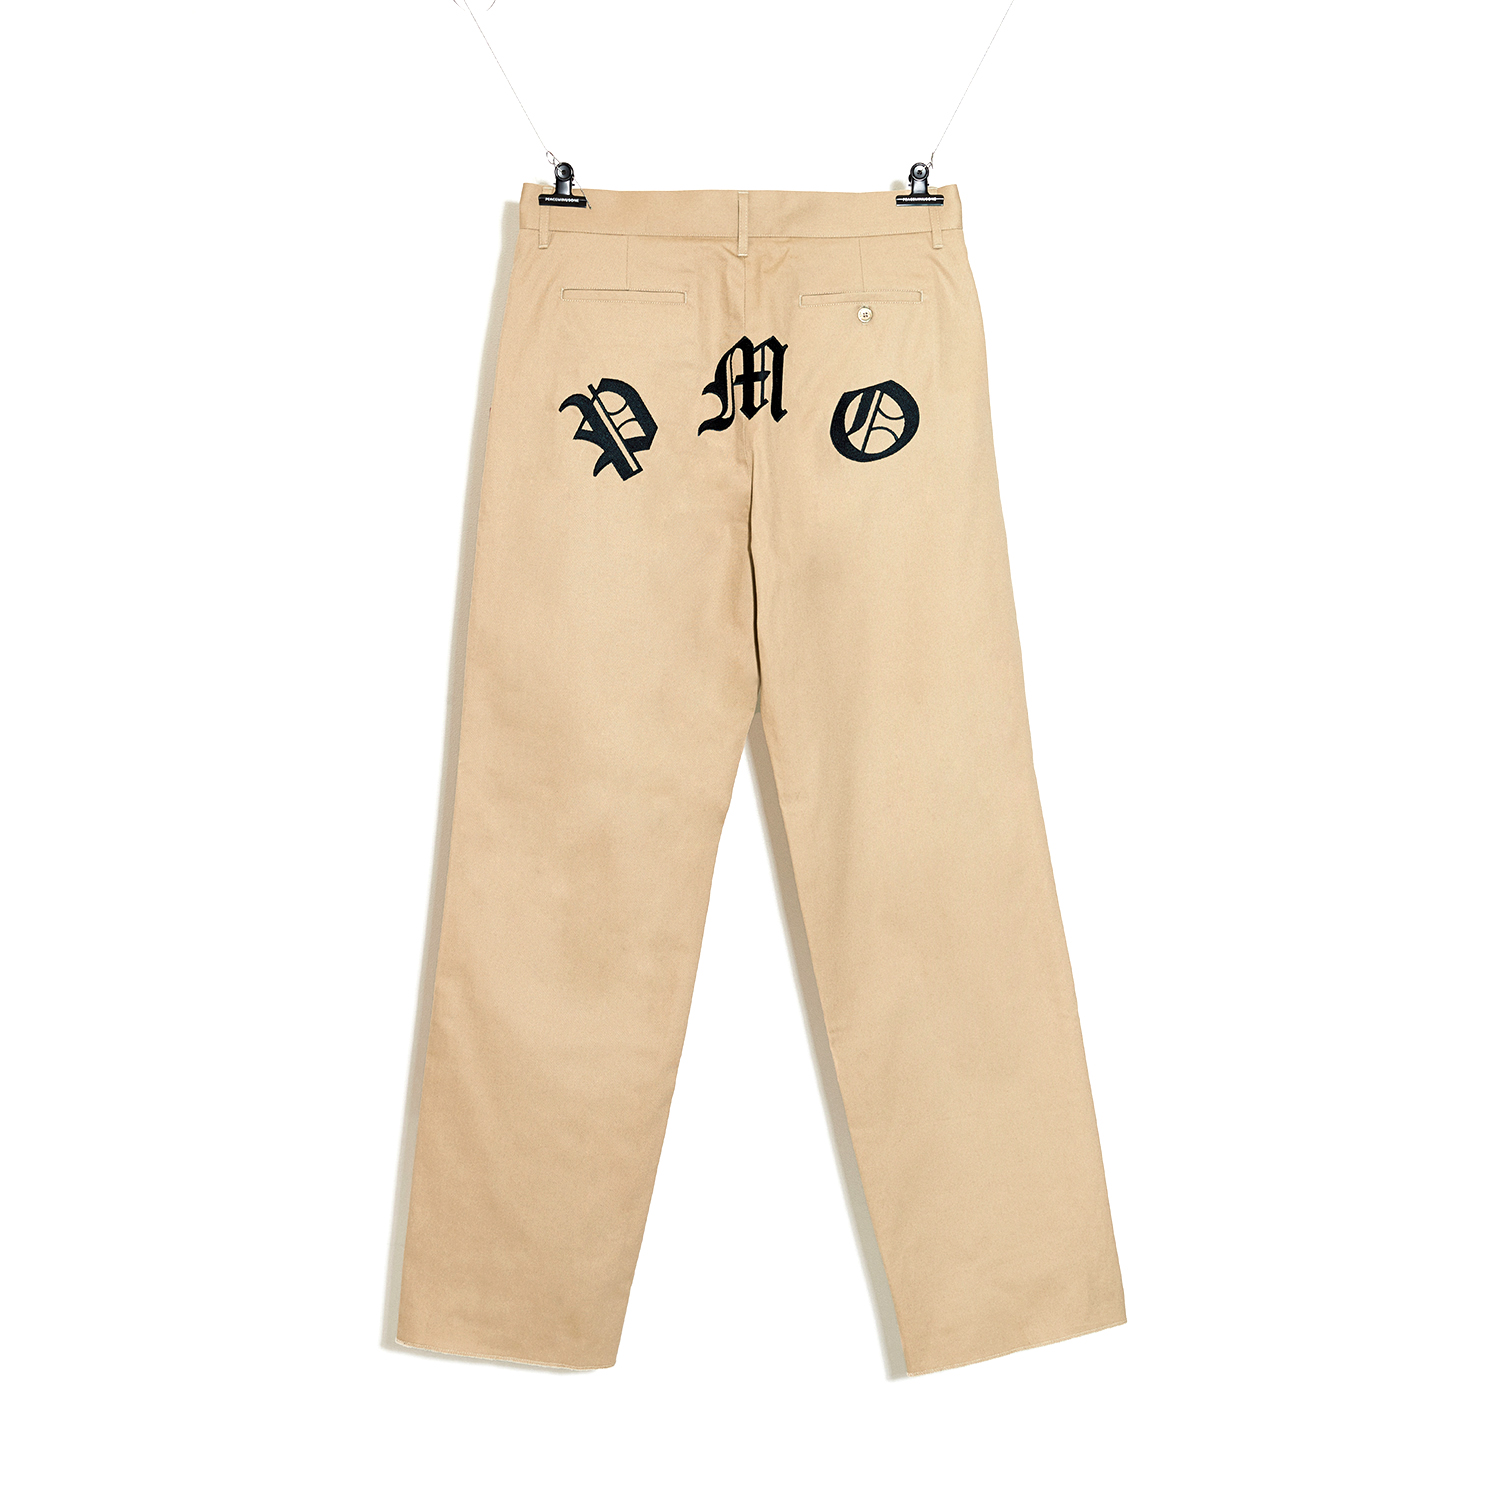 PMO WORK PANTS #1 BEIGE